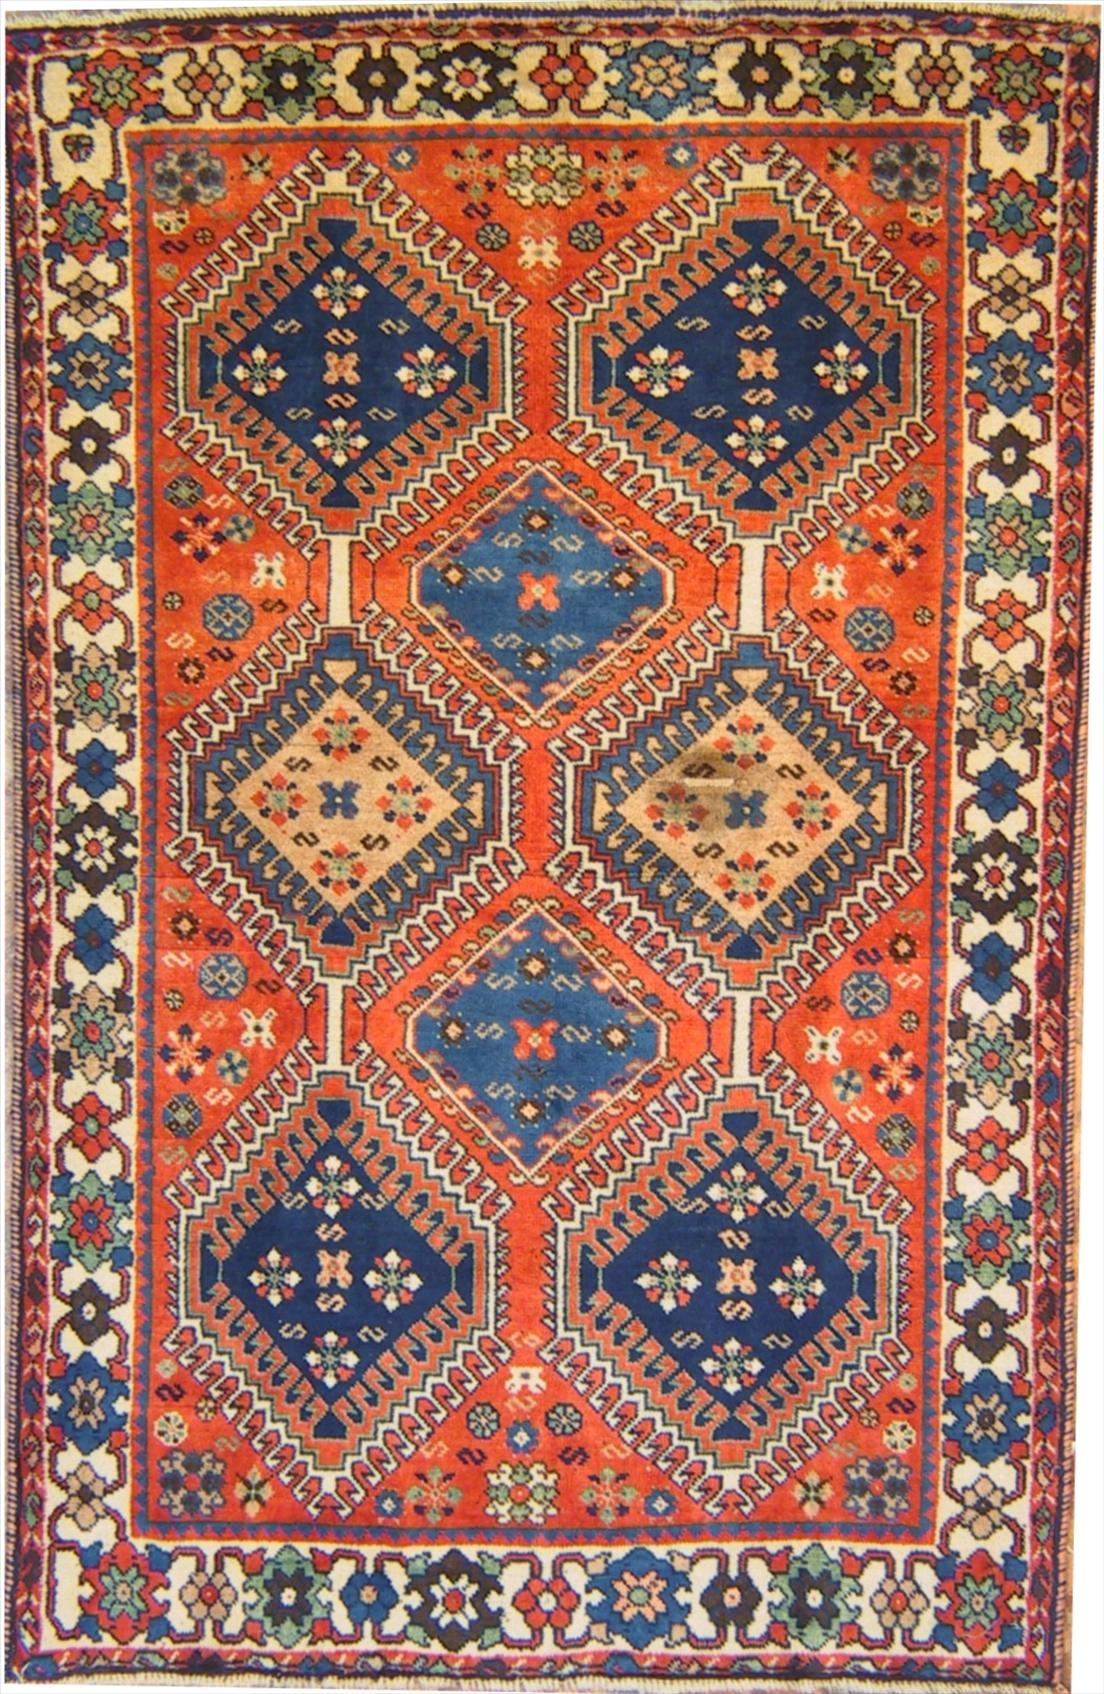 Persianrug Persiancarpet Persianrugsinfo Ruglovers Persian With Blue Persian Rugs (Image 12 of 15)